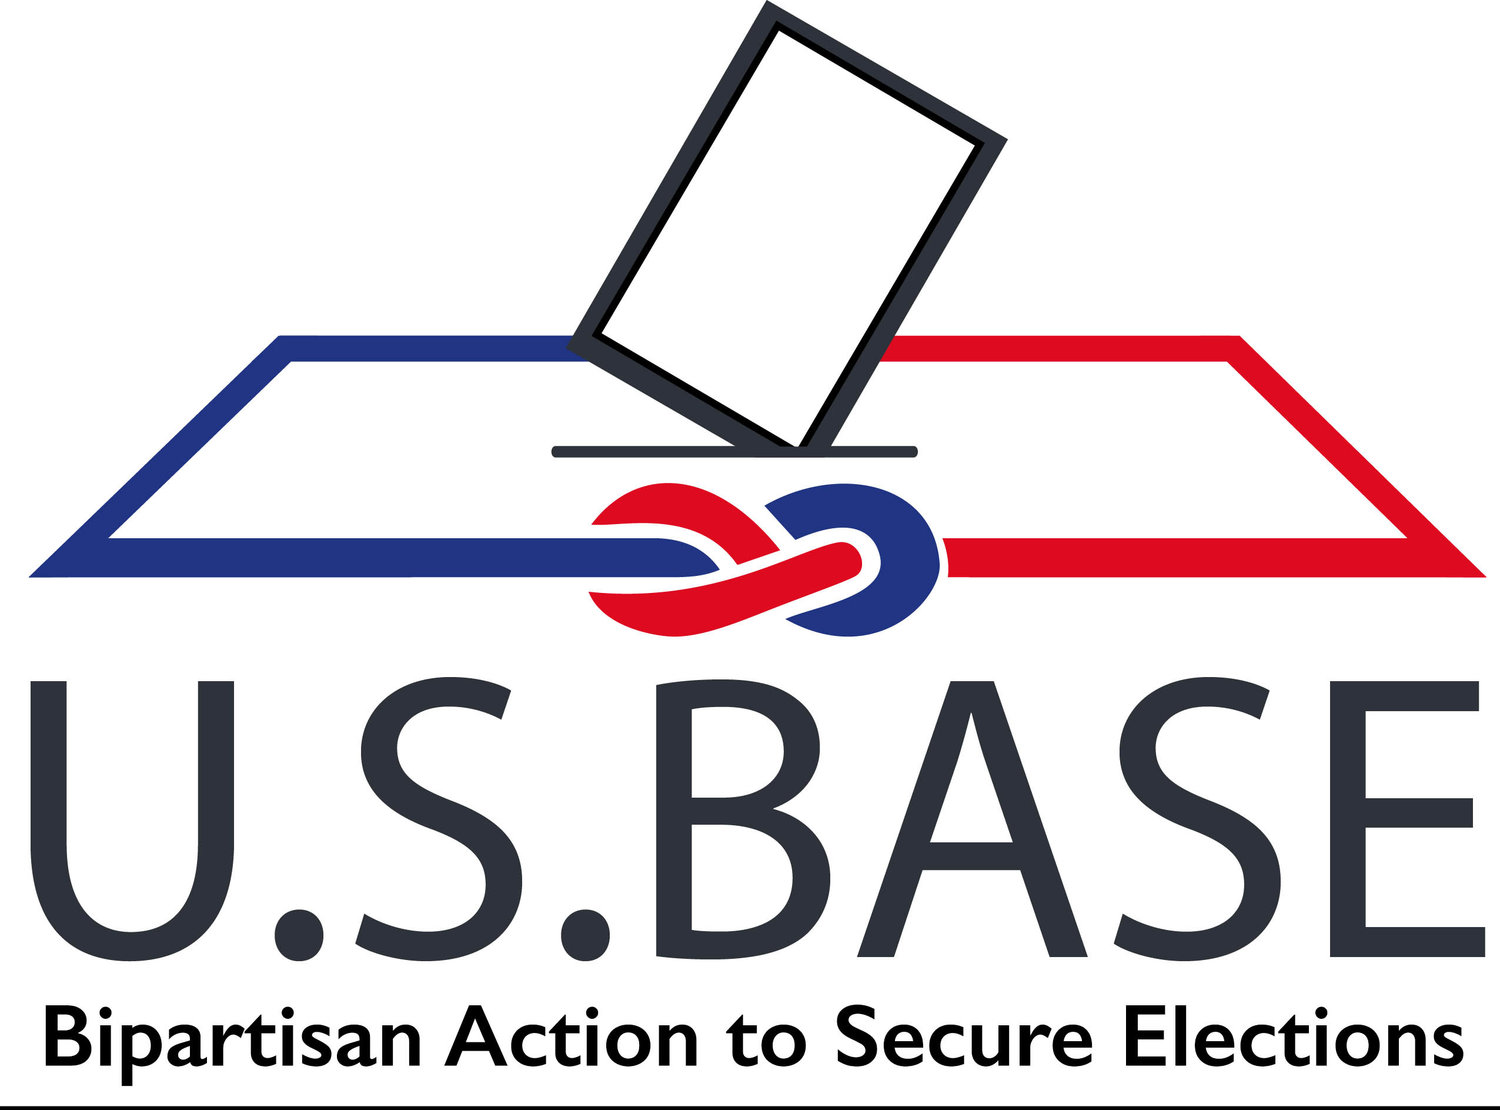 Bipartisan Action to Secure Elections